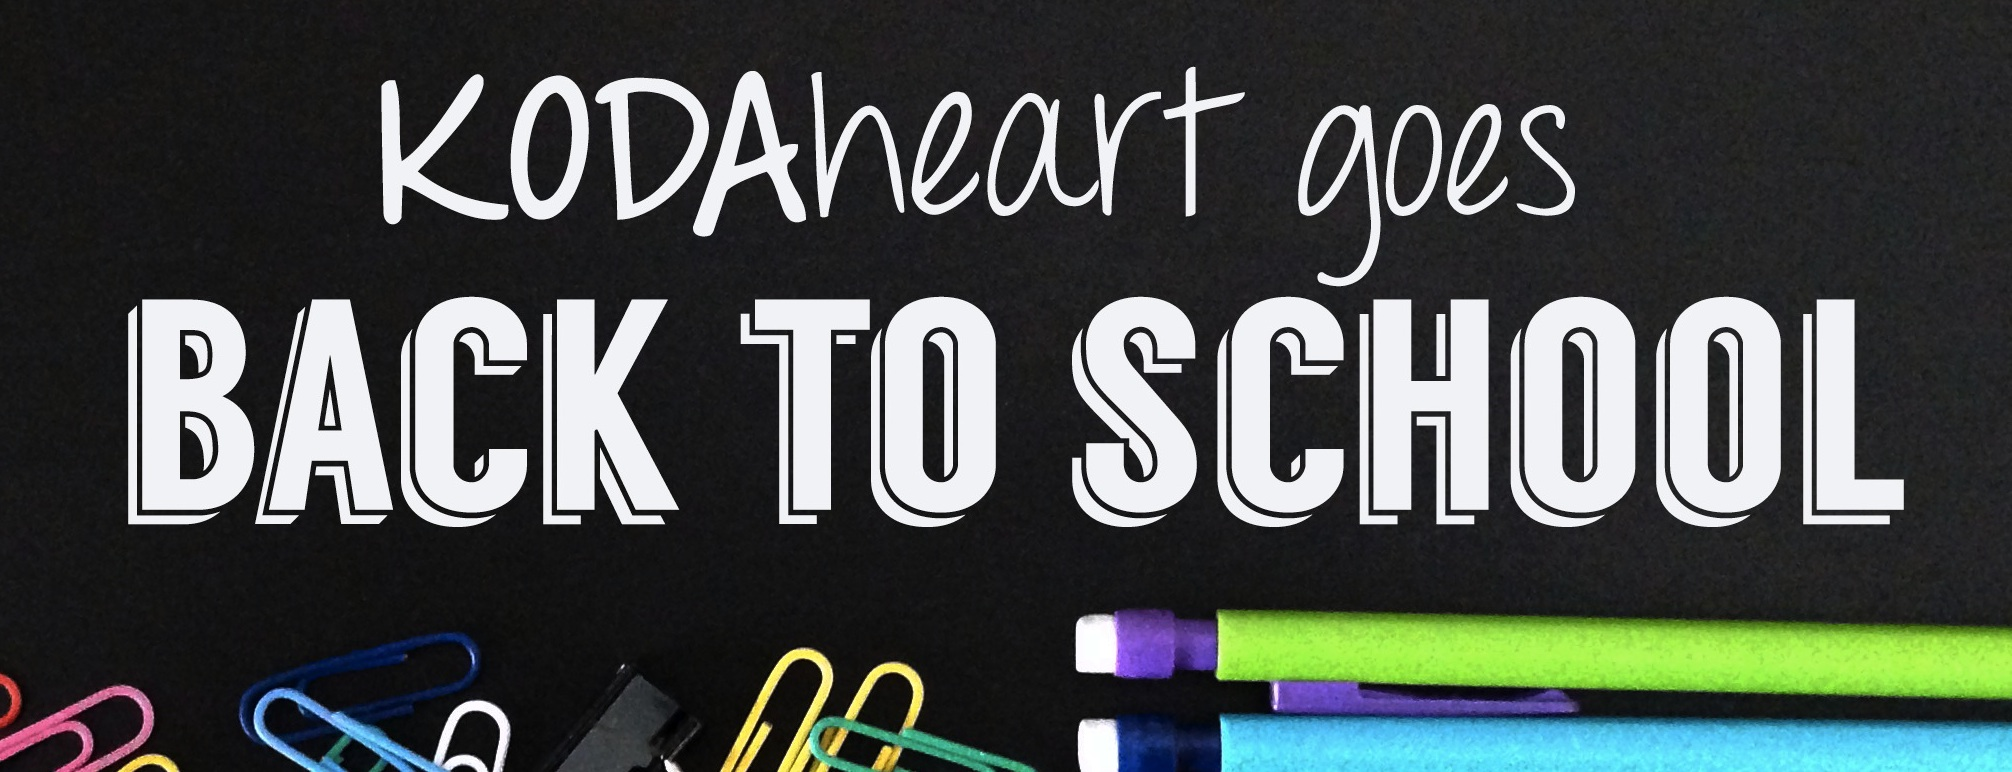 "White text hovers over colorful school supplies, including paper clips and mechanical pencils. The text reads: ""KODAheart goes Back to School"""